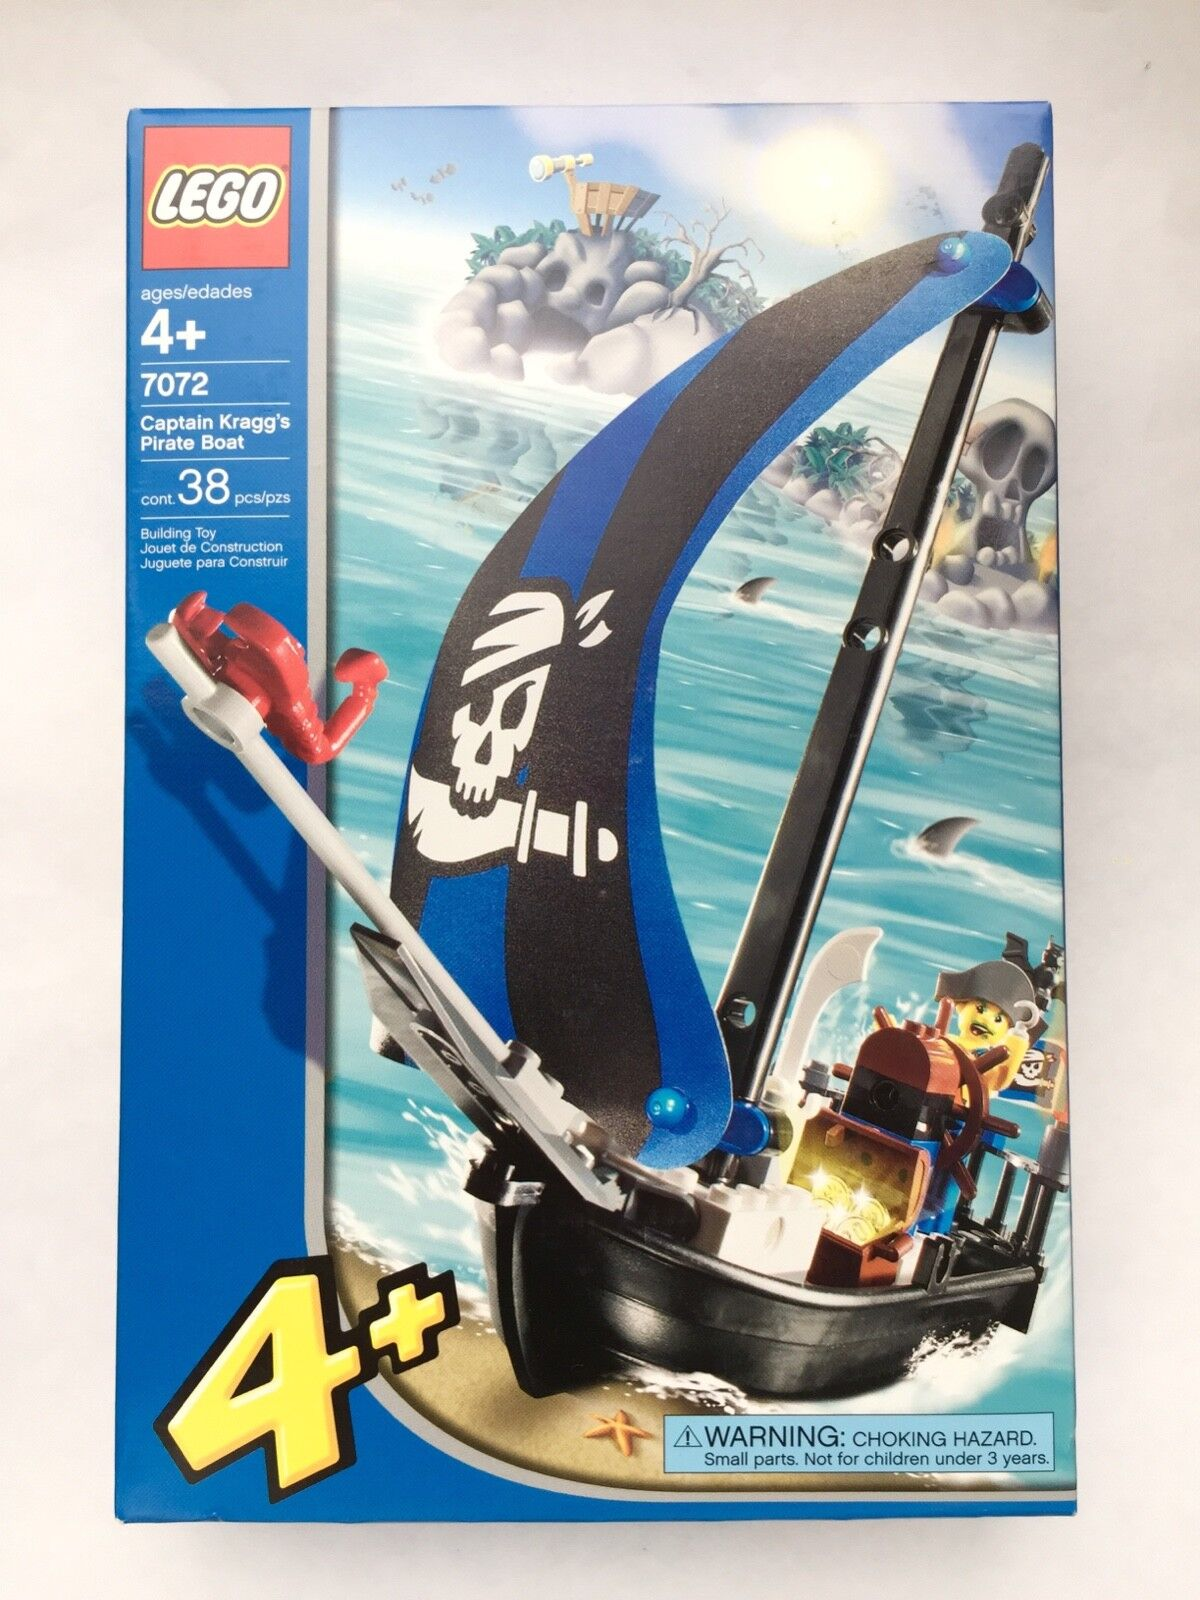 Lego 7072 Captain Kragg's Pirate Boat 38 Pcs